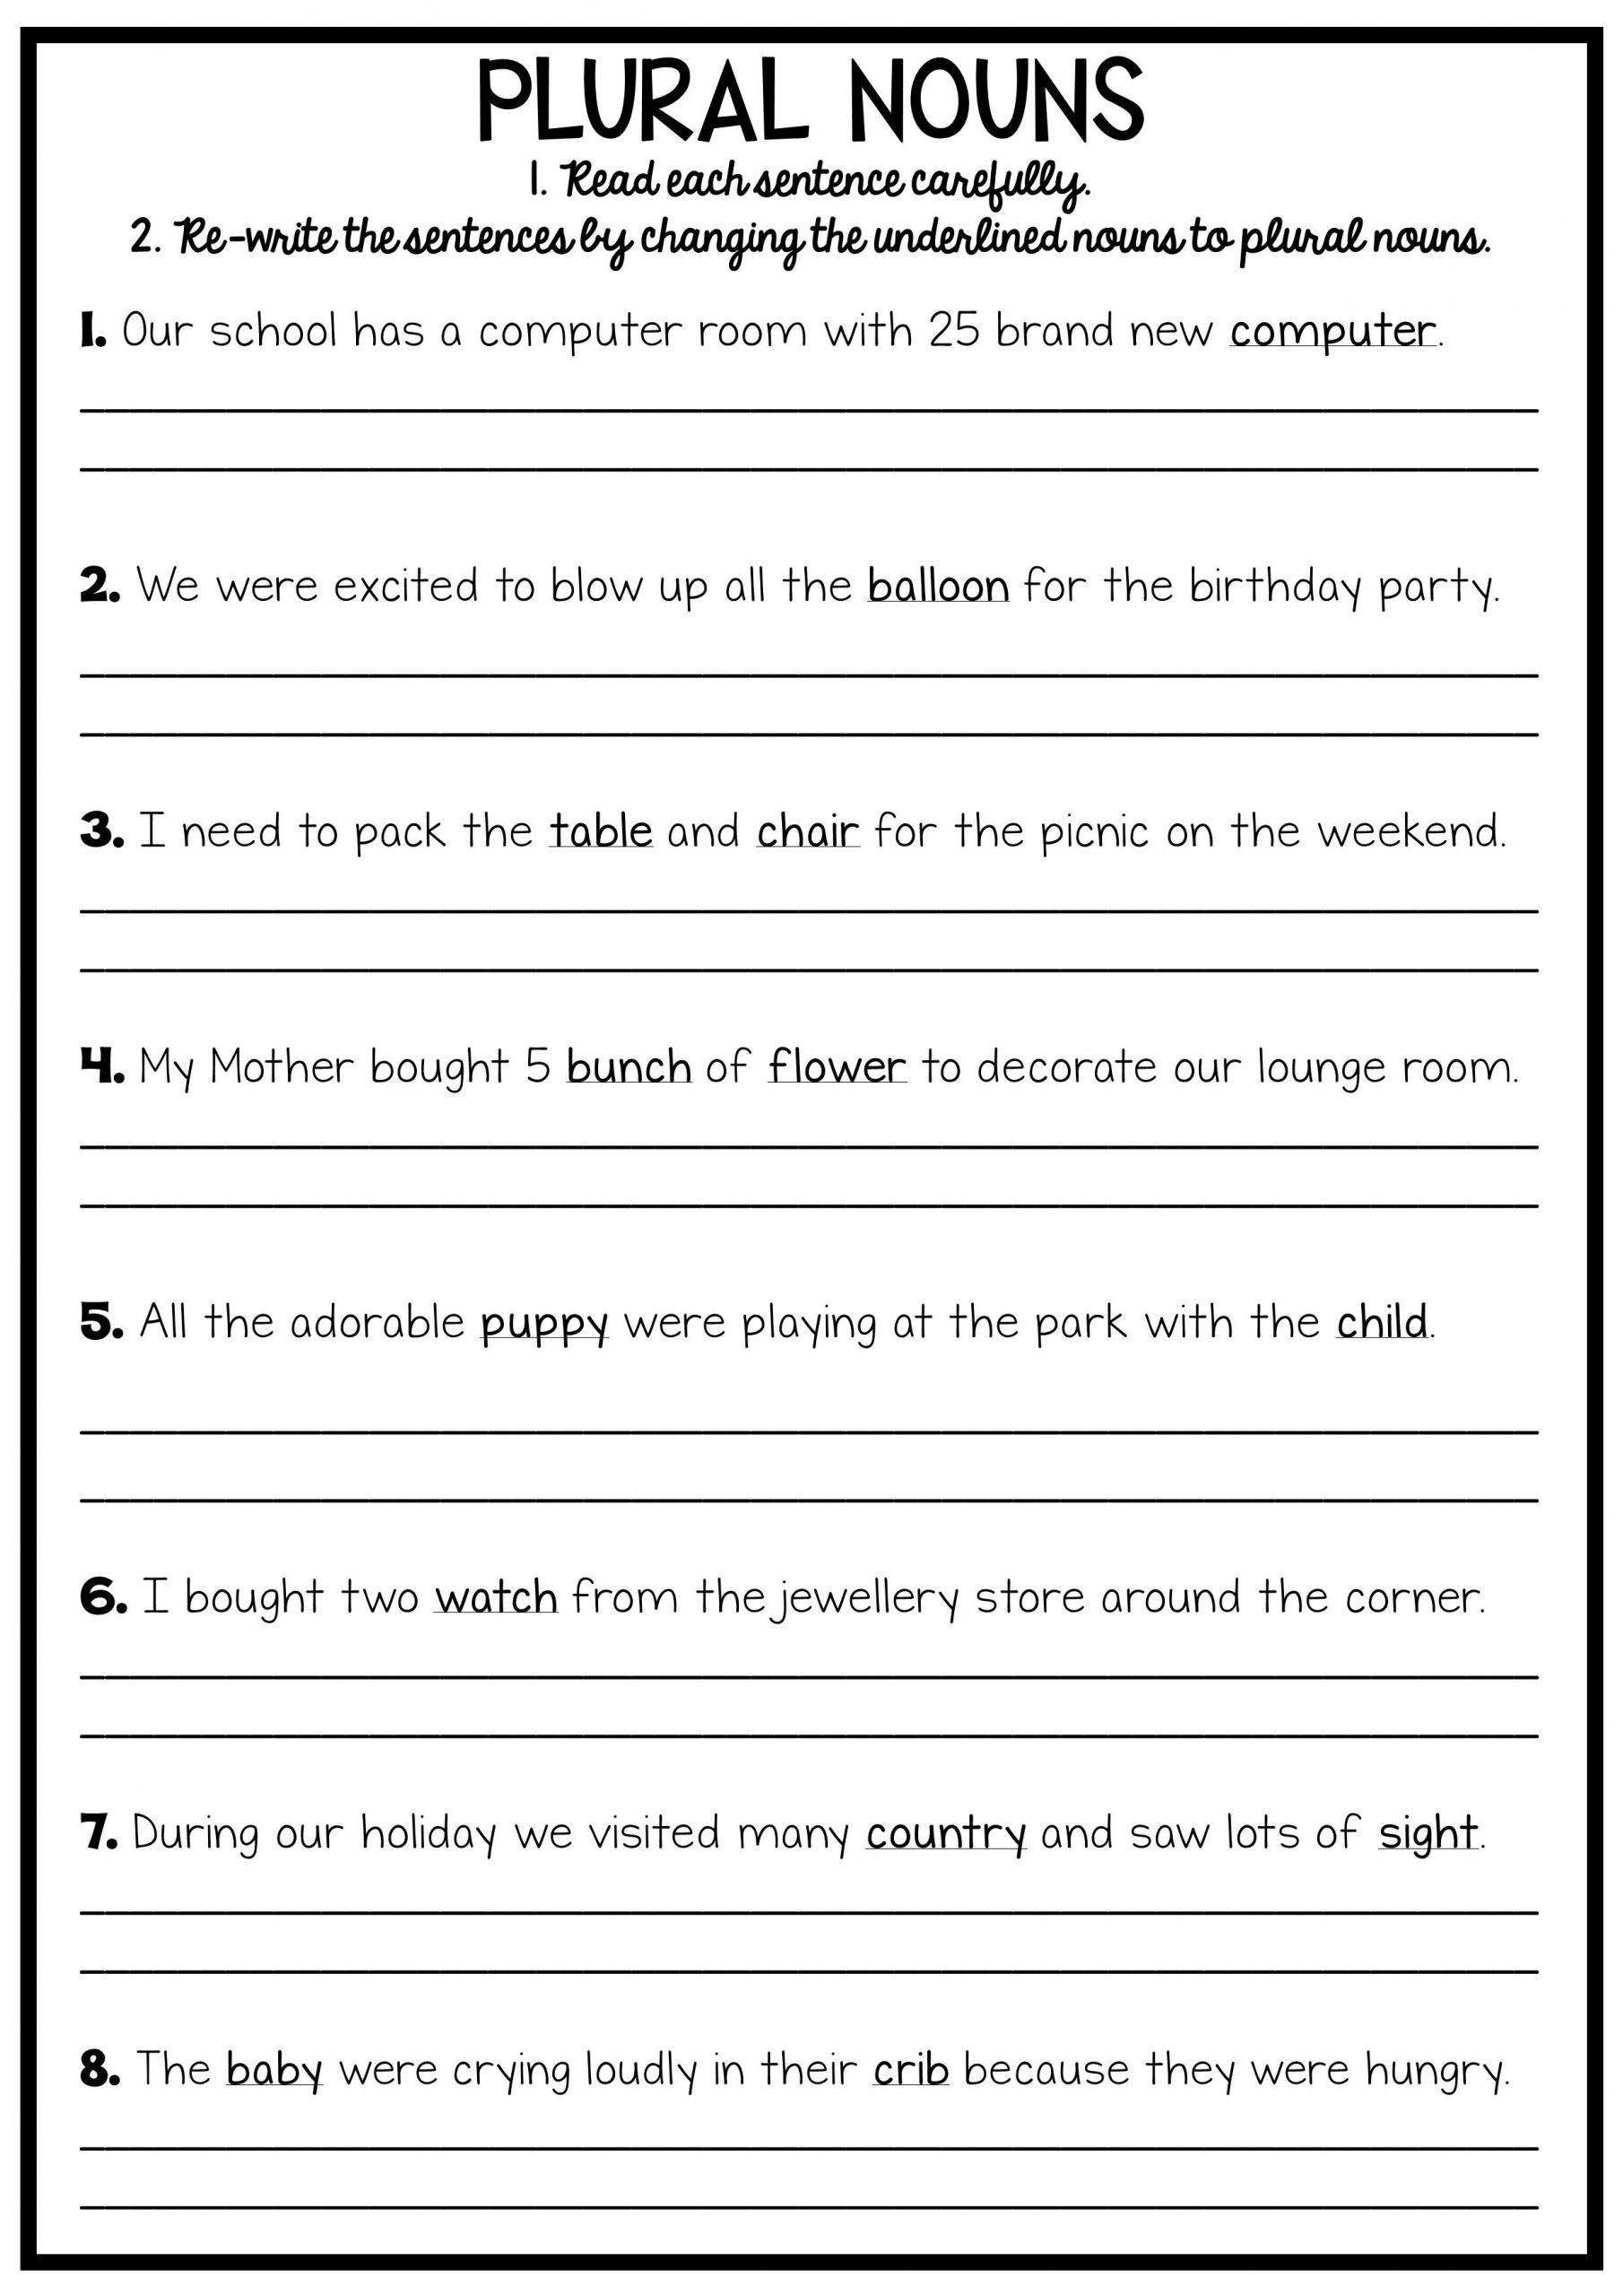 Language Arts Worksheets 8th Grade Grammar Worksheets 8th Grade English Printable Reading